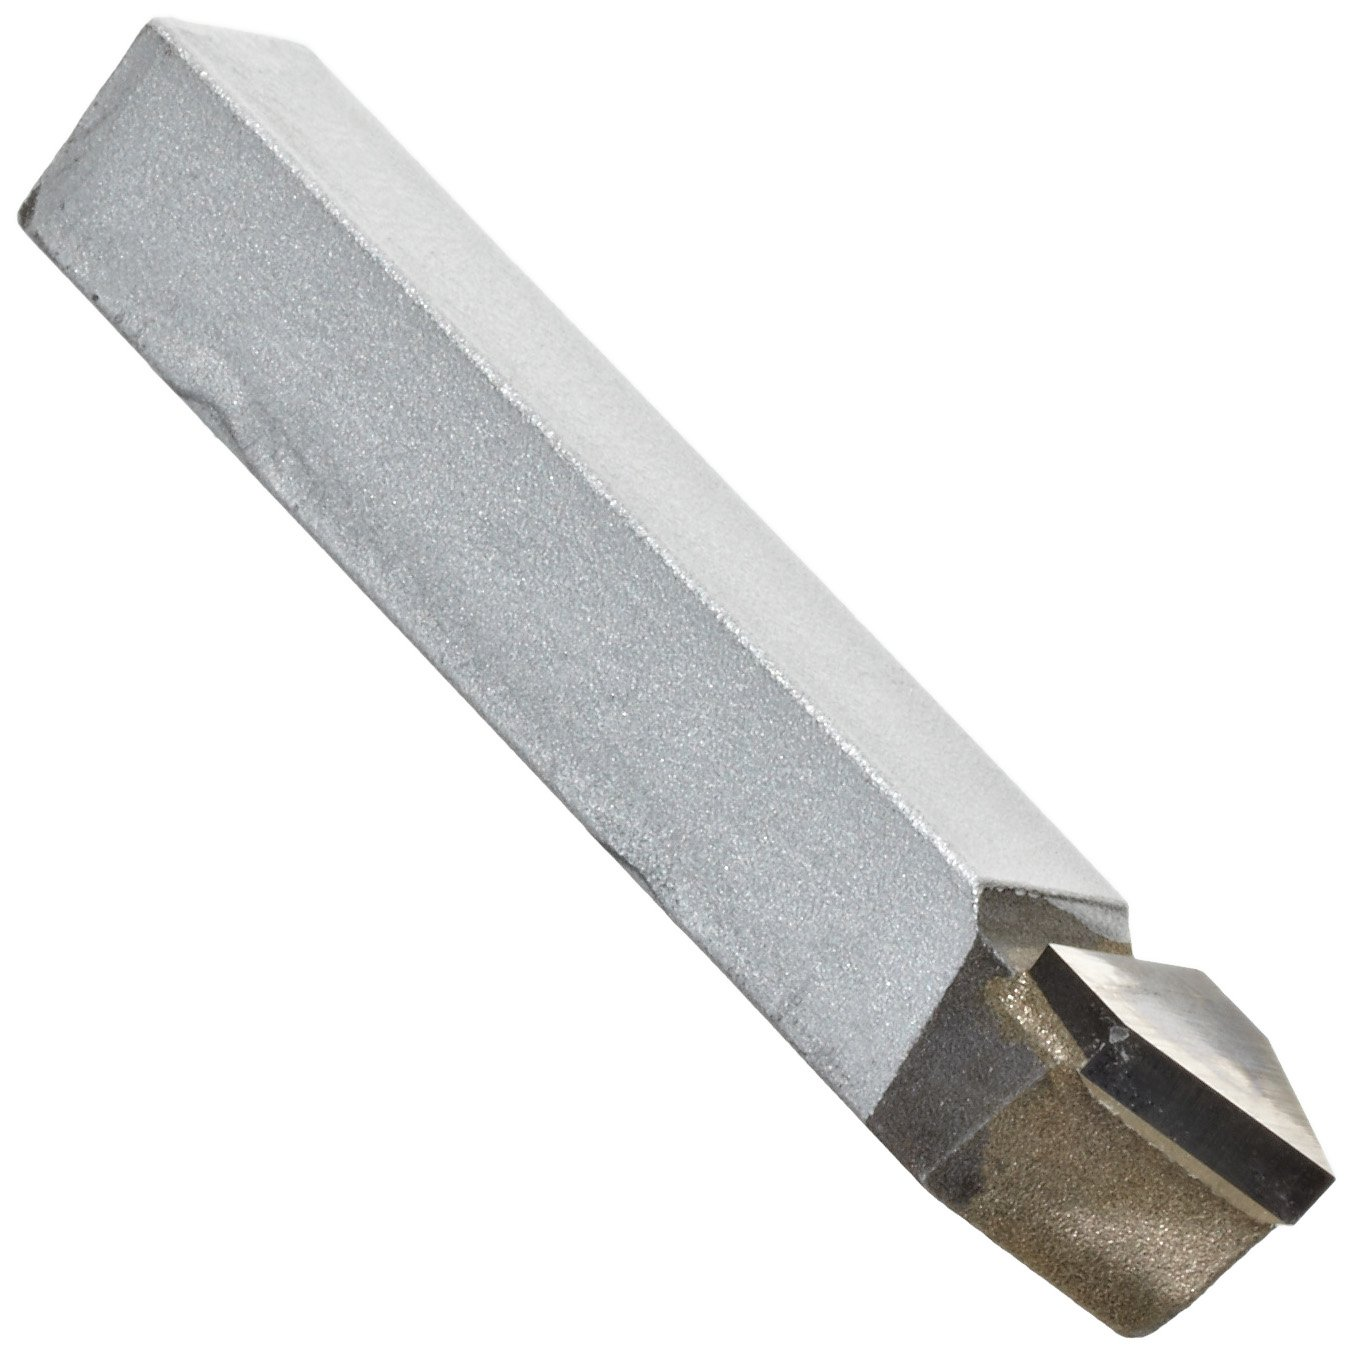 American Carbide Tool Carbide-Tipped Tool Bit for Threading, Neutral, Micrograin Grade, 0.375' Square Shank, E 6 Size 0.375 Square Shank E-6 MICROGRAIN